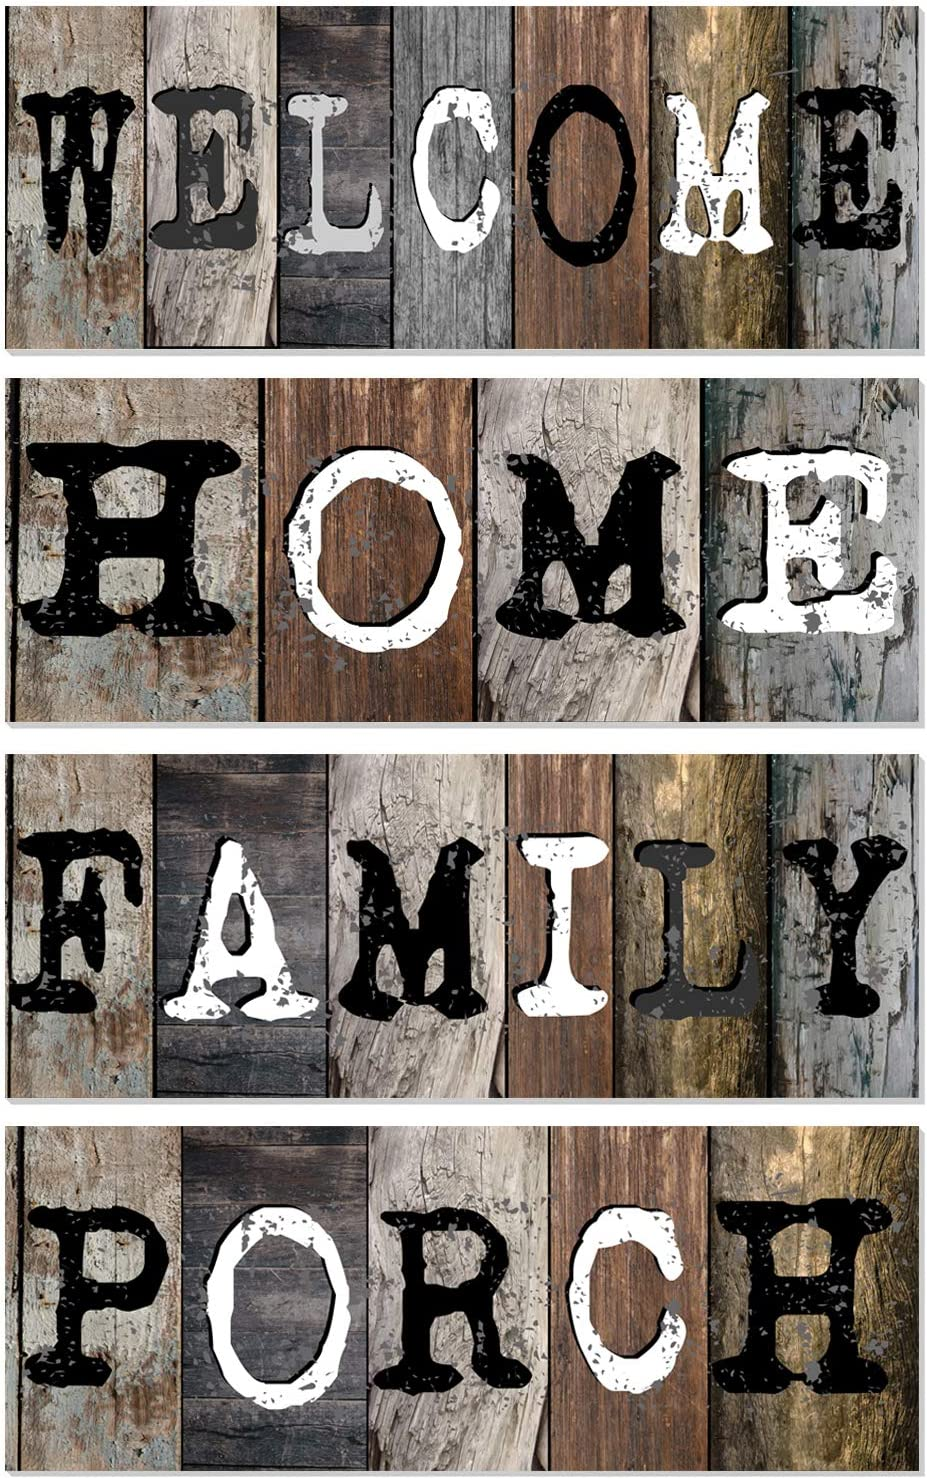 4 Signs Welcome Home Family Porch Wood Hanging Sign Kit -Farmhouse Wood Hanging Wall Art -Rustic Wood Plaque Giving For Housewarming -16 X 6 Inches Each